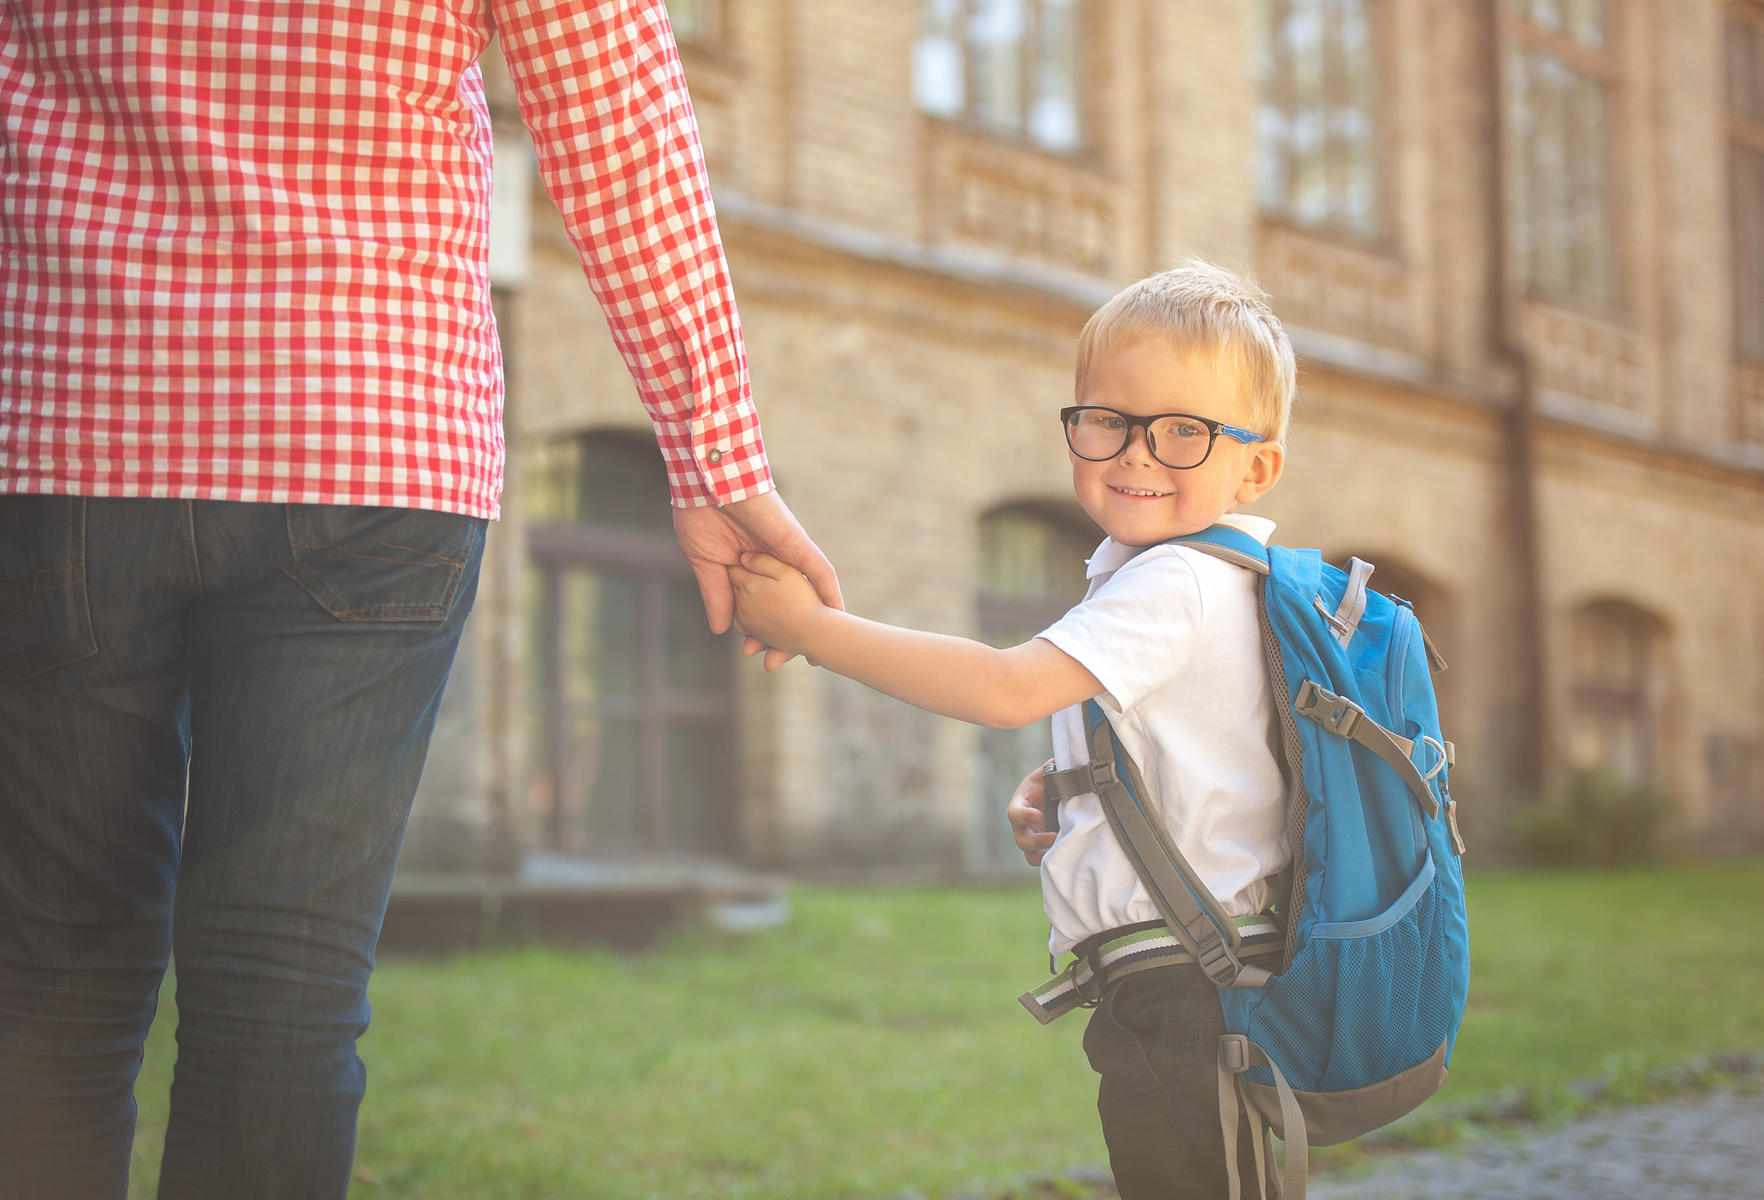 Overcoming Separation Anxiety On The First Day Of School